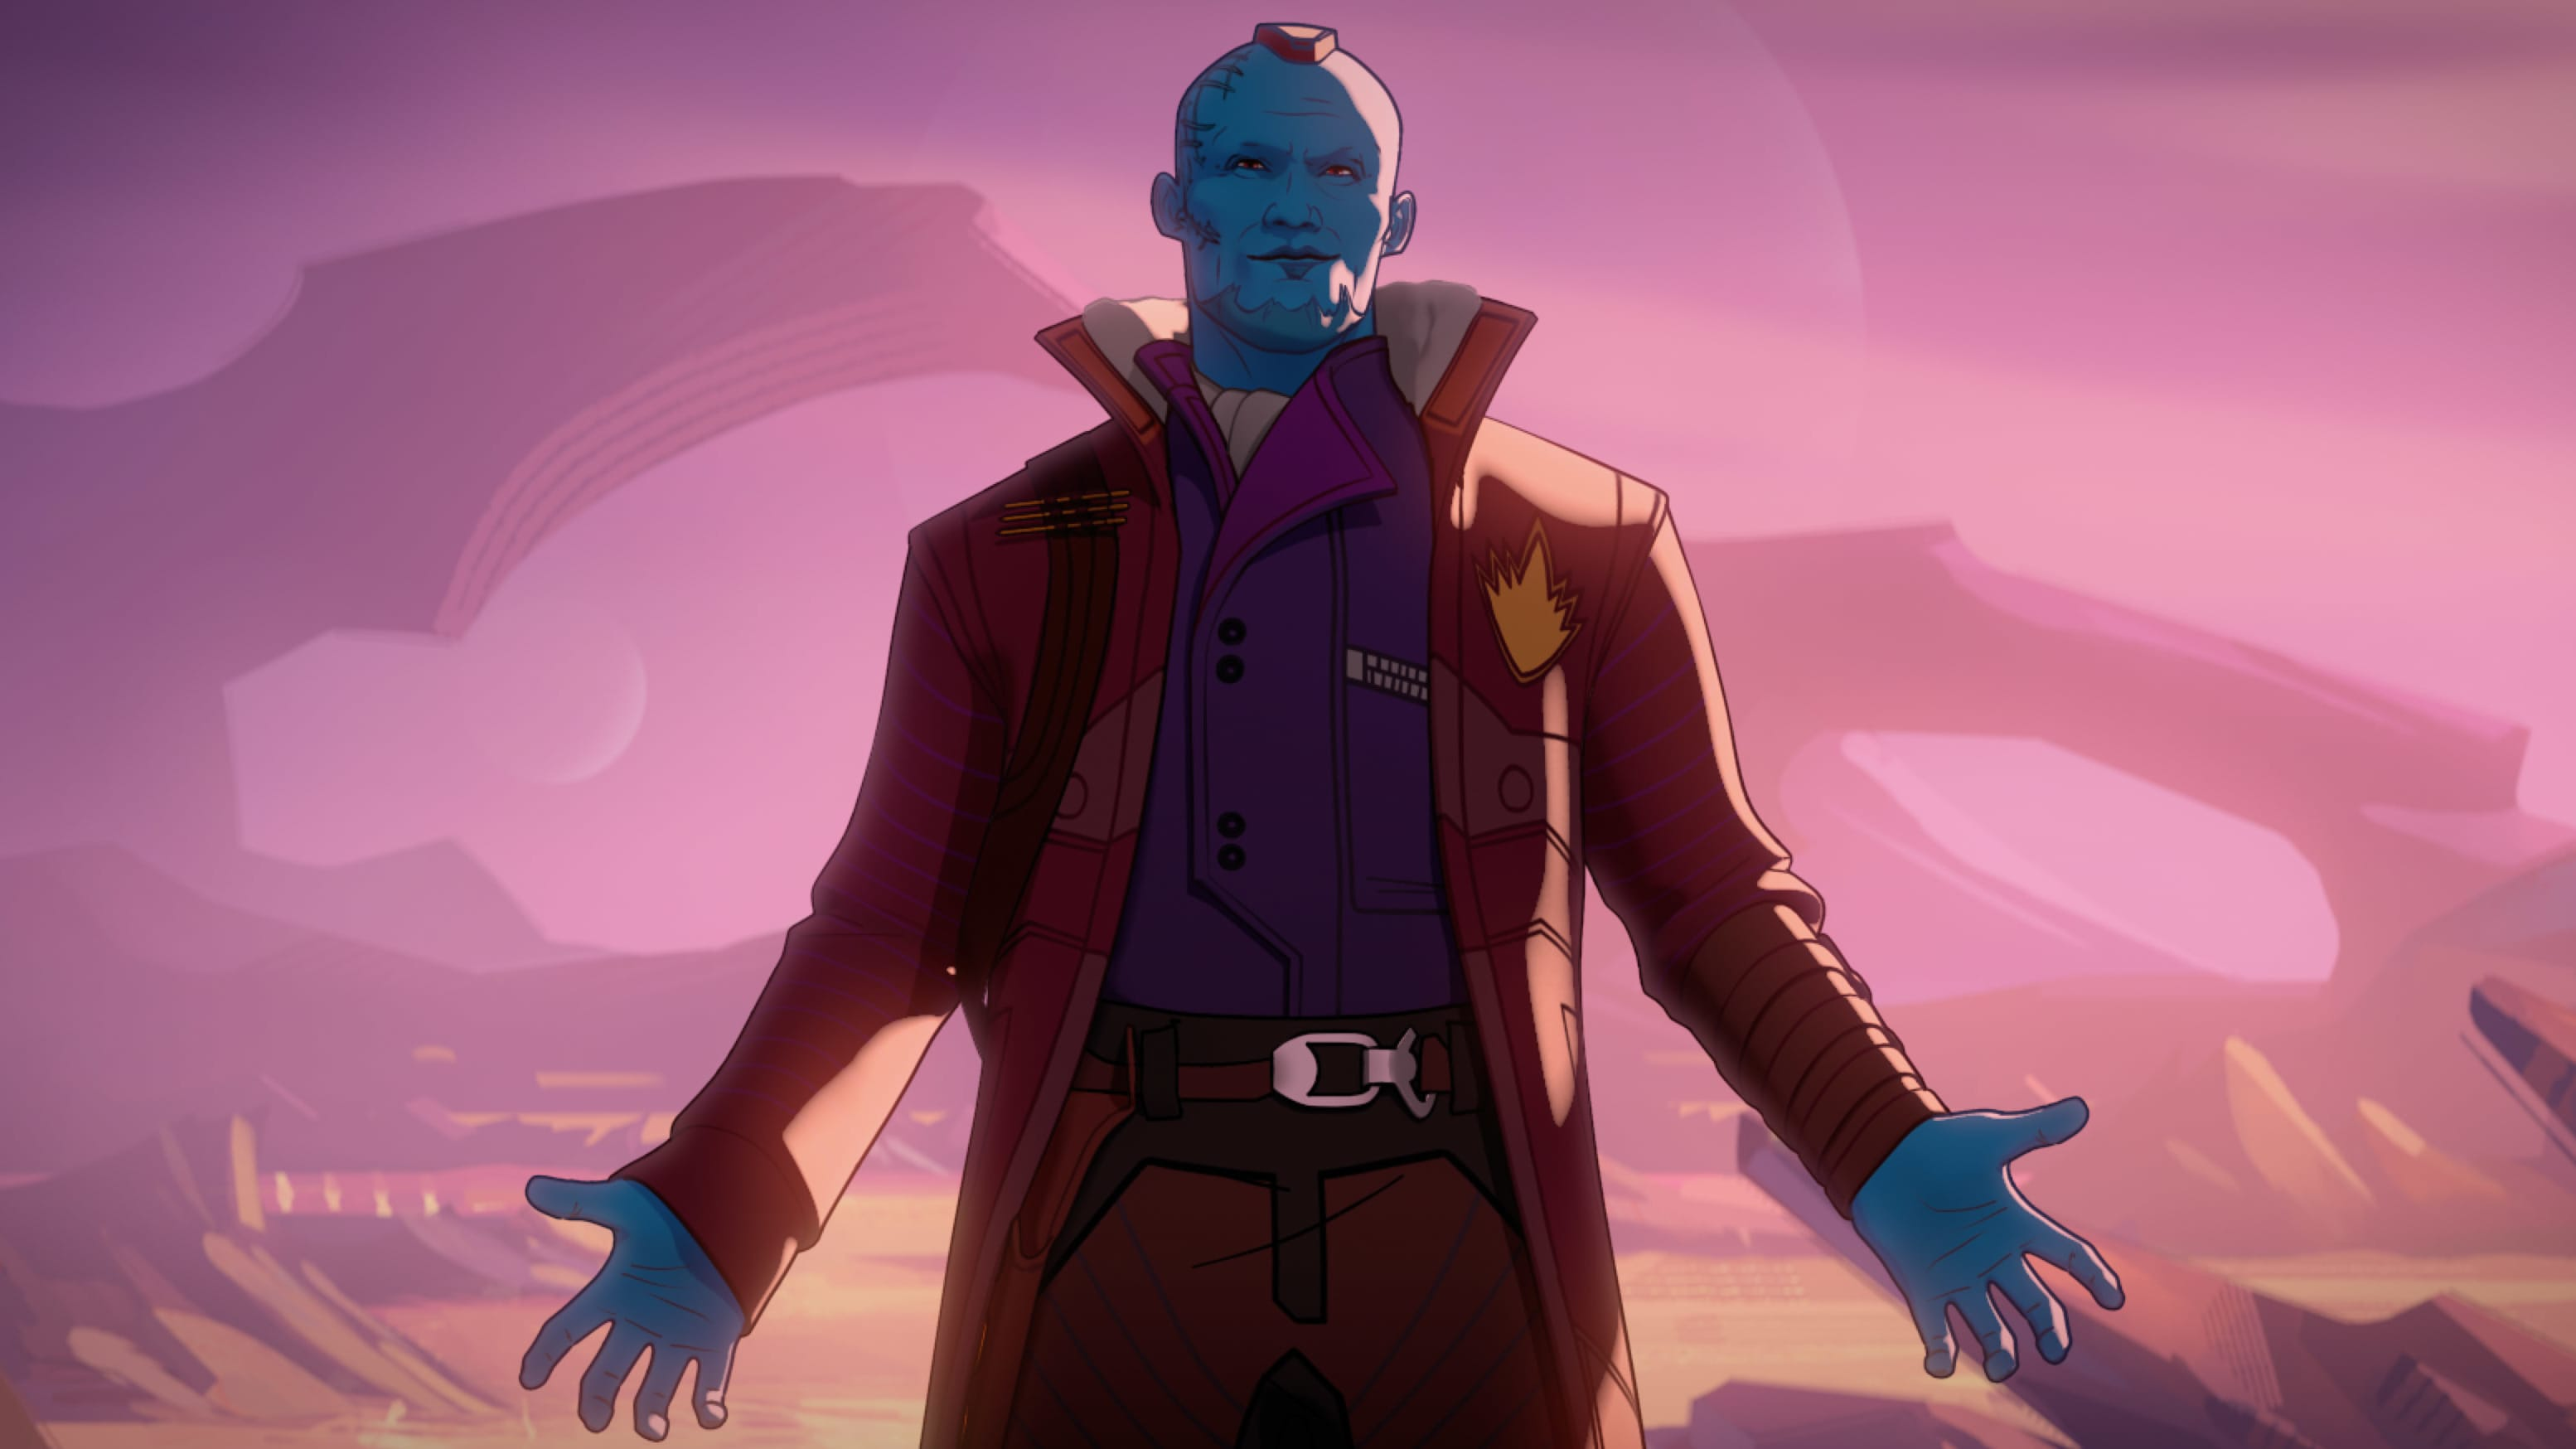 Yondu in Marvel Studios' WHAT IF…? exclusively on Disney+. ©Marvel Studios 2021. All Rights Reserved.